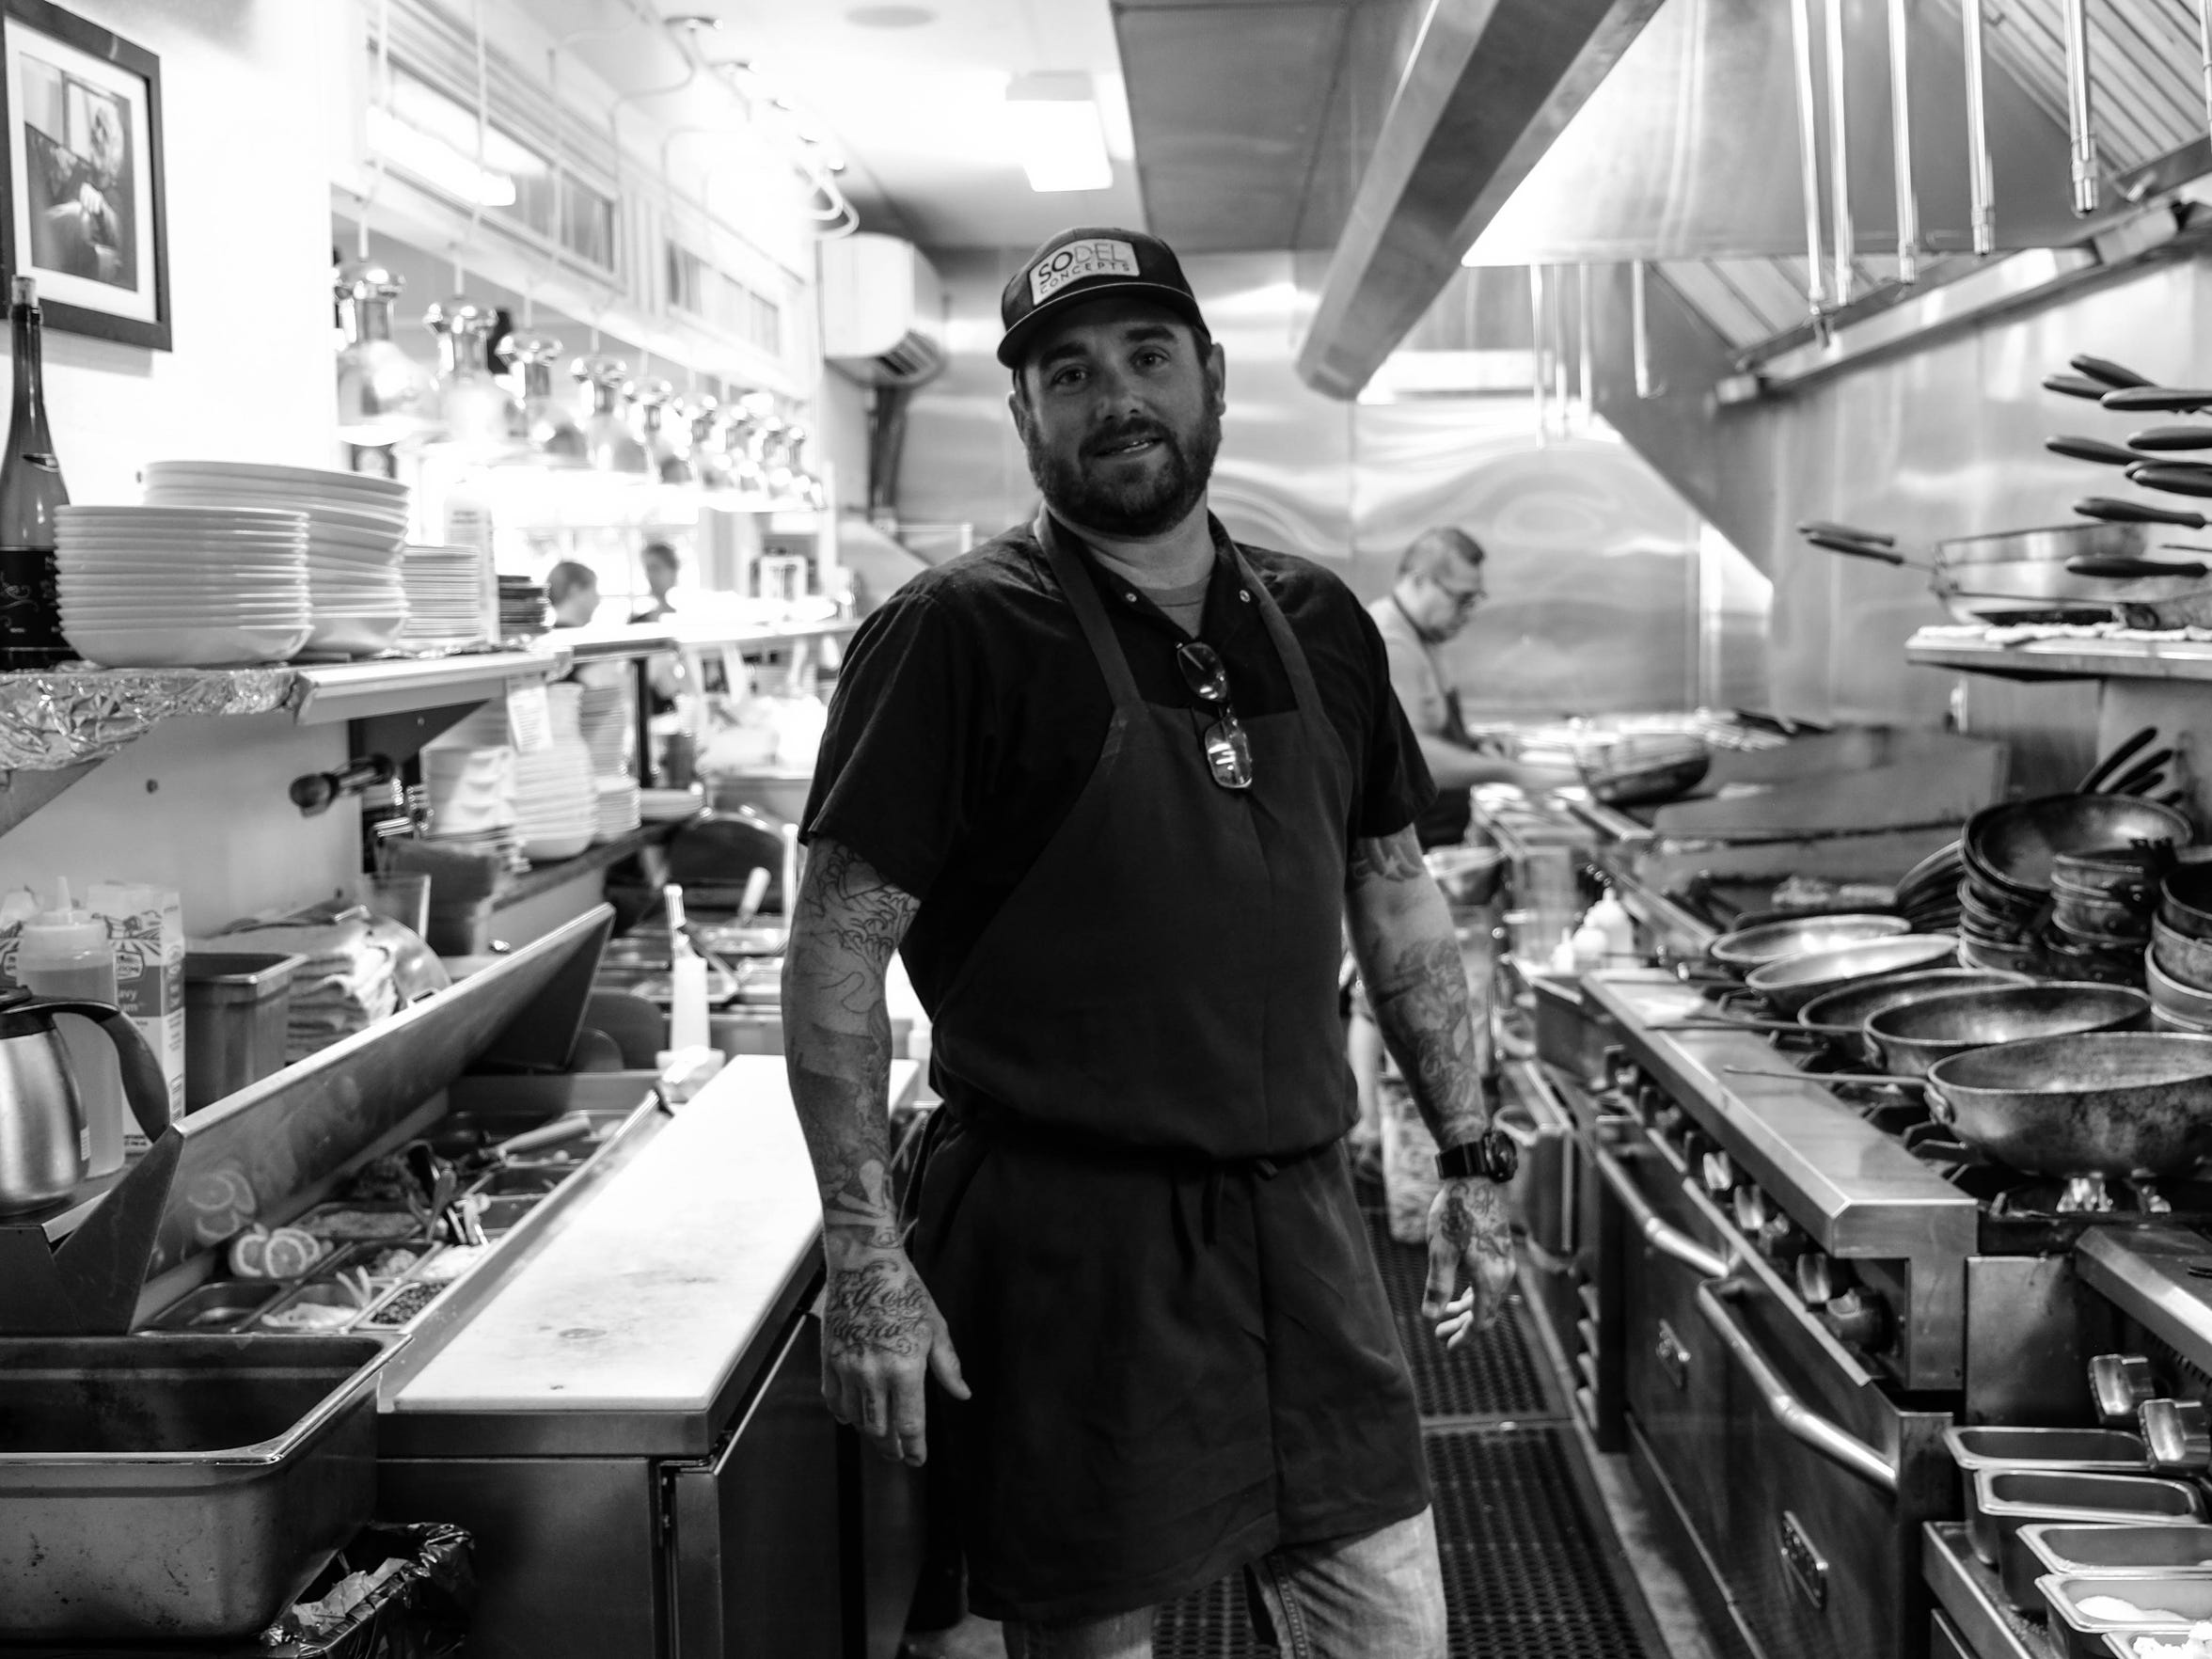 Jason Dietterick, executive chef at Bluecoast in Rehoboth Beach, stands in the kitchen during a busy lunch. He says he could relate Anthony Bourdain's struggles with depression and past substance abuse.